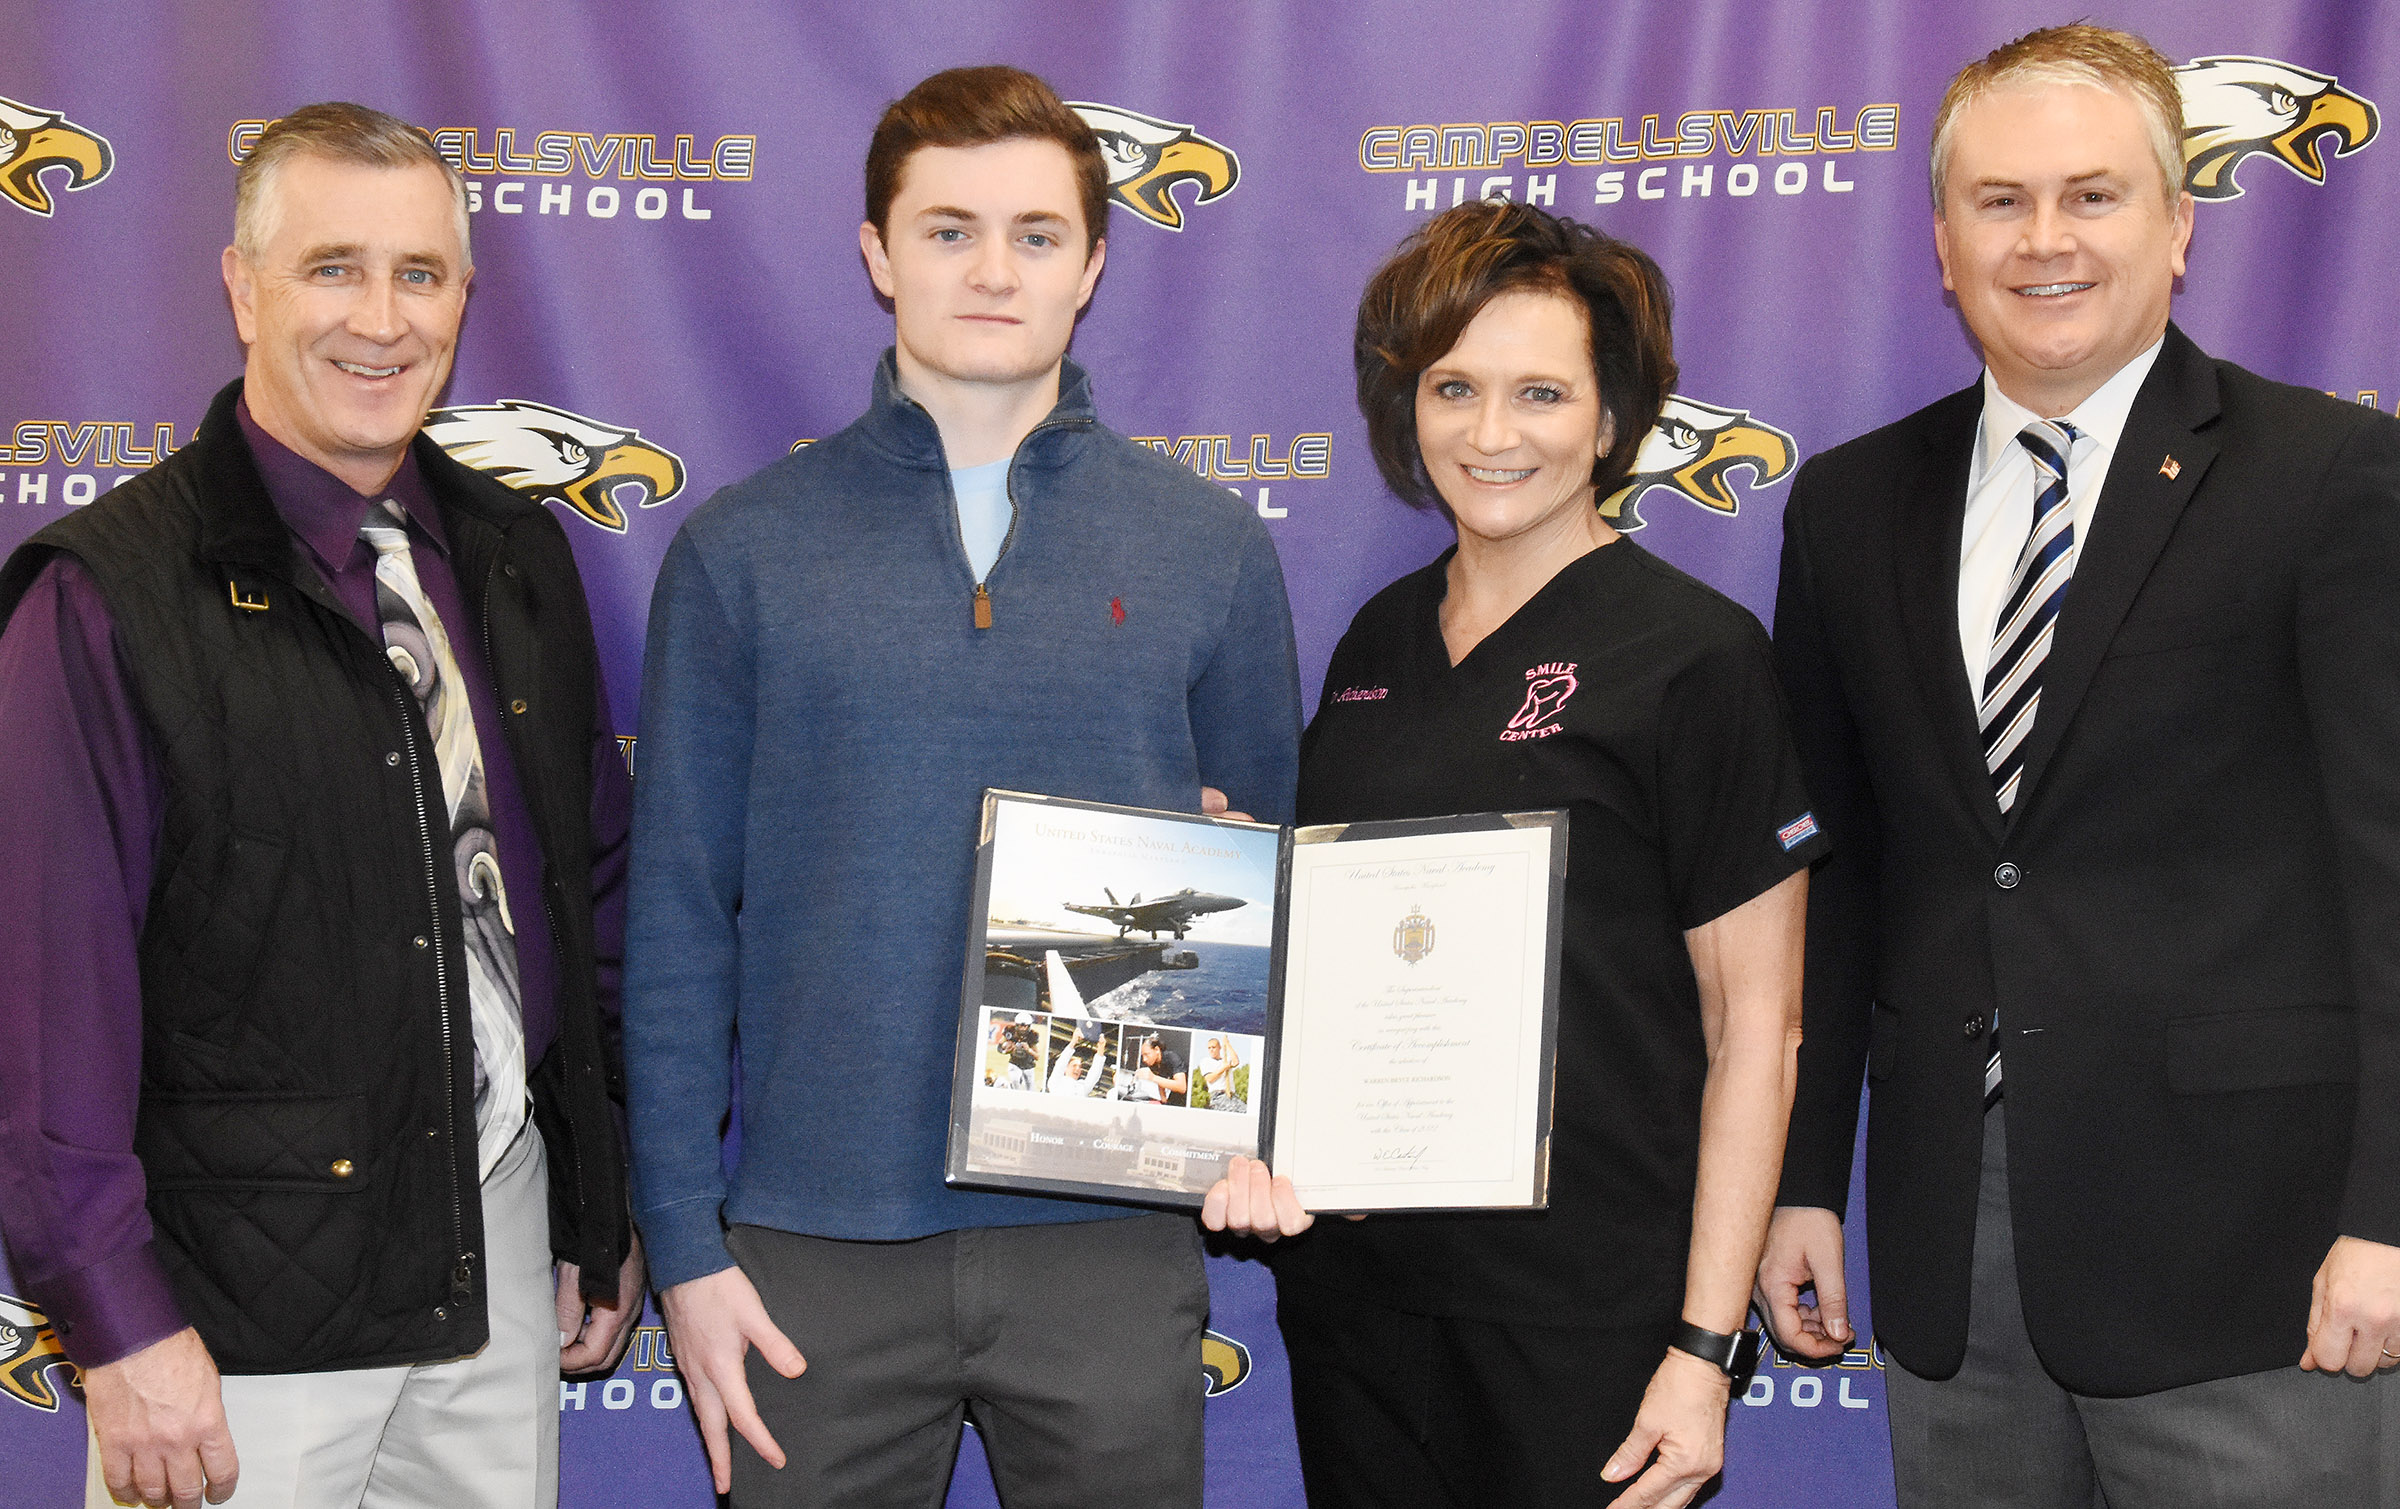 Campbellsville High School senior Bryce Richardson has been appointed to the U.S. Naval Academy, based on a nomination from U.S. Rep. James Comer, R-Ky. Comer came to CHS on Tuesday, Jan. 23, to meet with Richardson. From left are Bryce's father Jeff Richardson, Bryce, his mother Dr. Marlene Richardson and Comer.